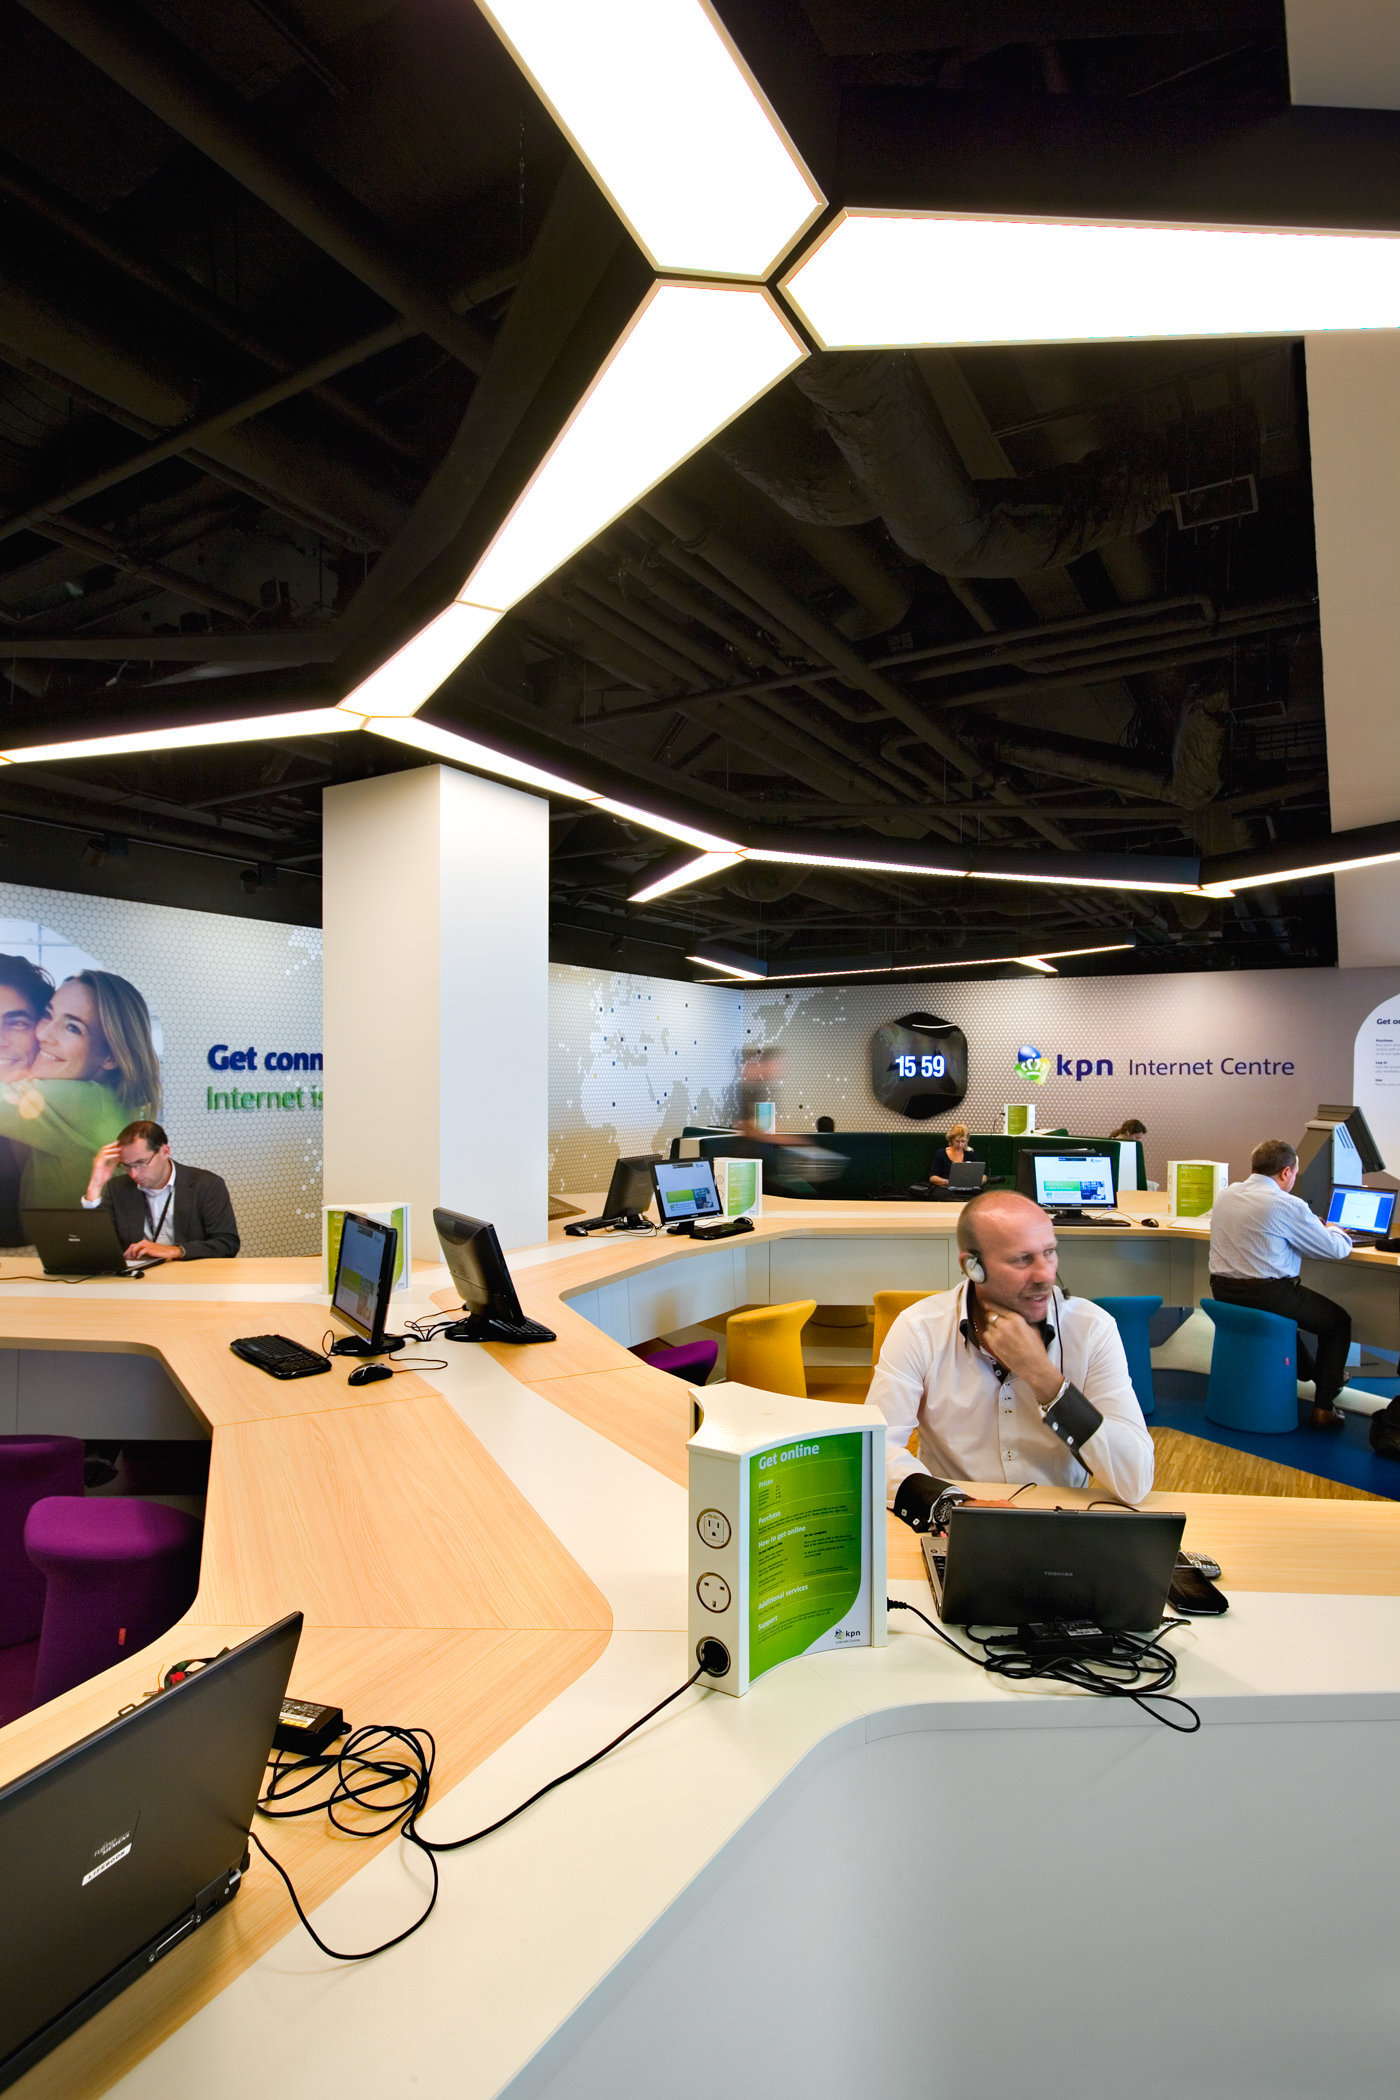 KPN Hotspot at Schiphol Airport, Amsterdam by Storeage